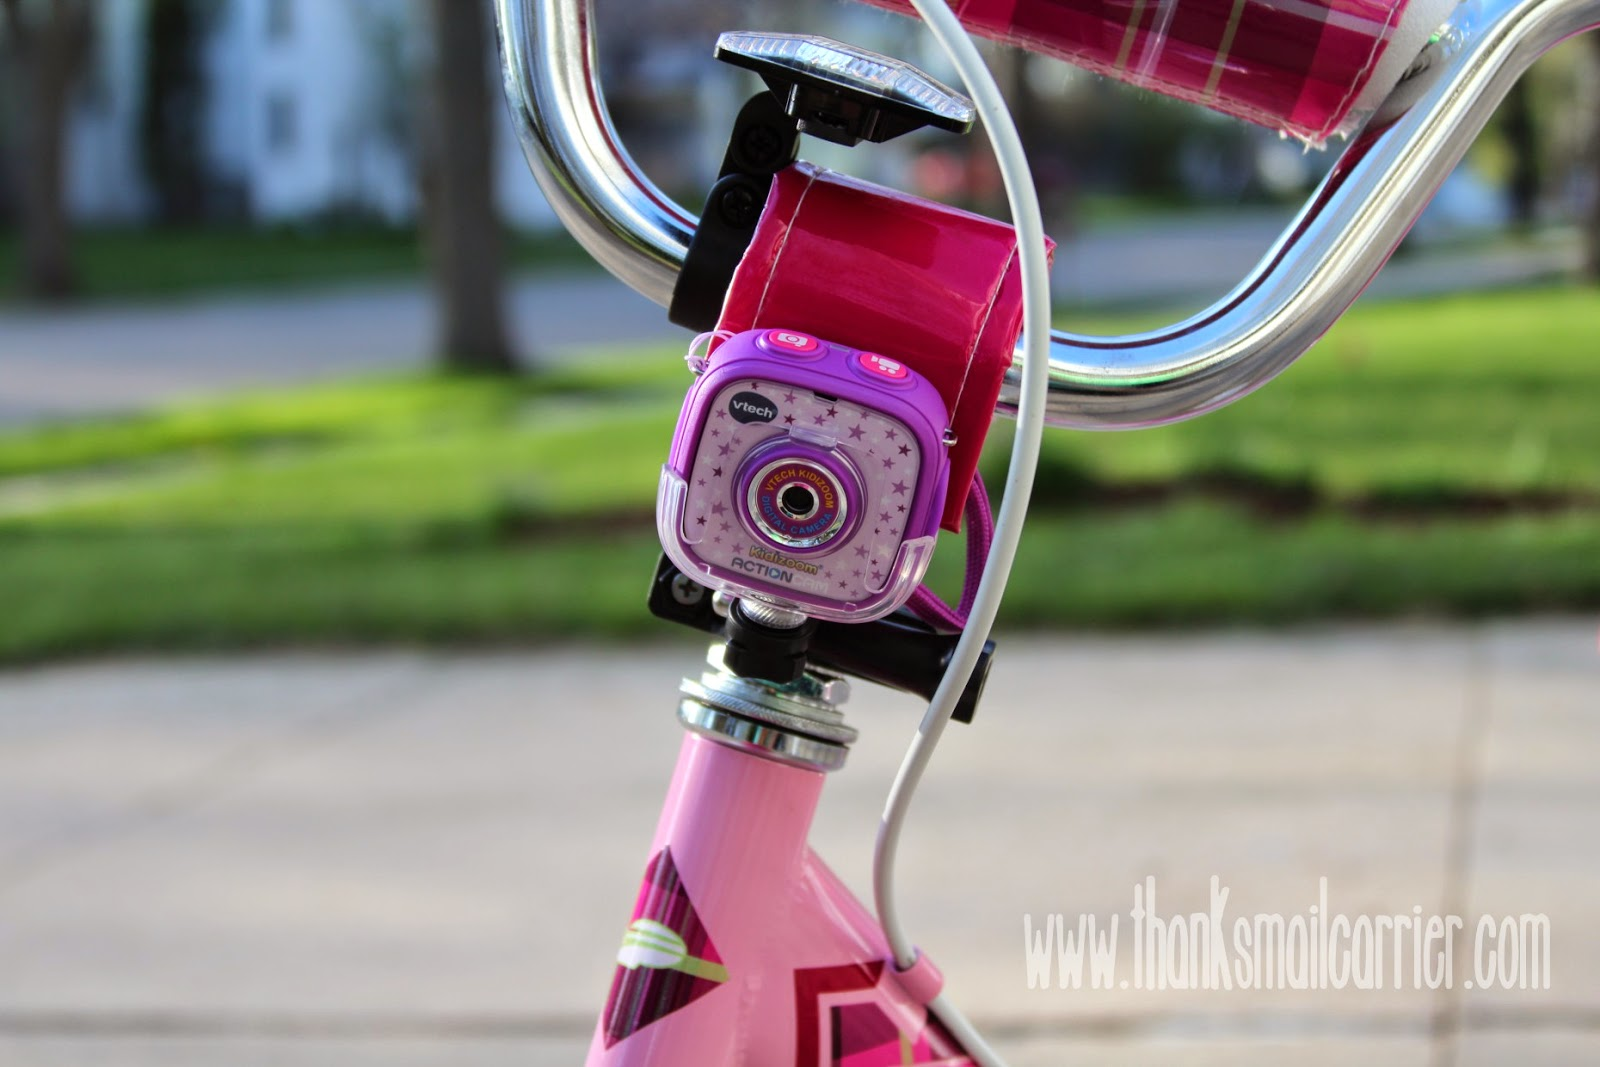 VTech Kidizoom Action Cam bike